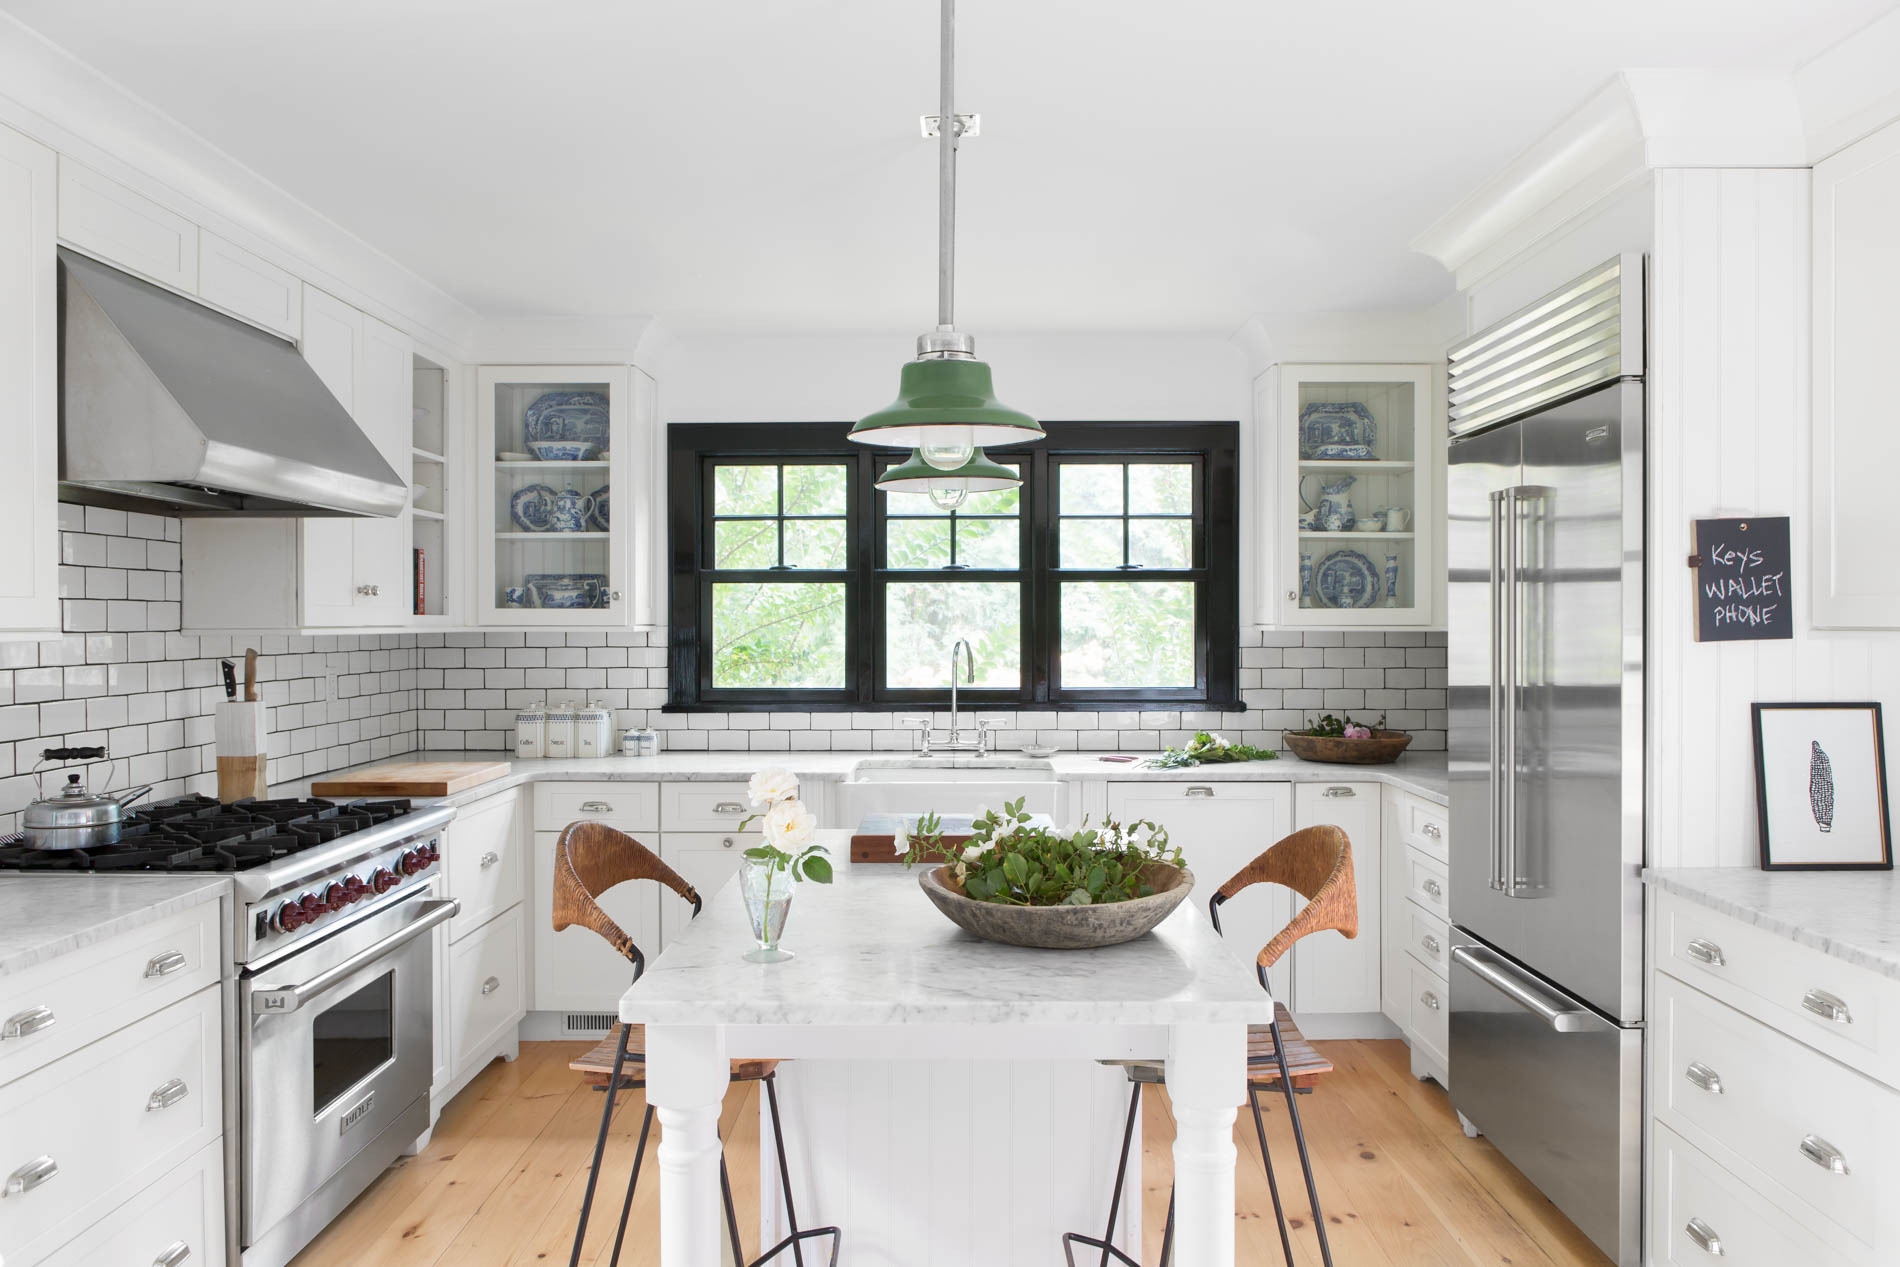 HILKO_AMAGANSETT_KITCHEN_31-Edit